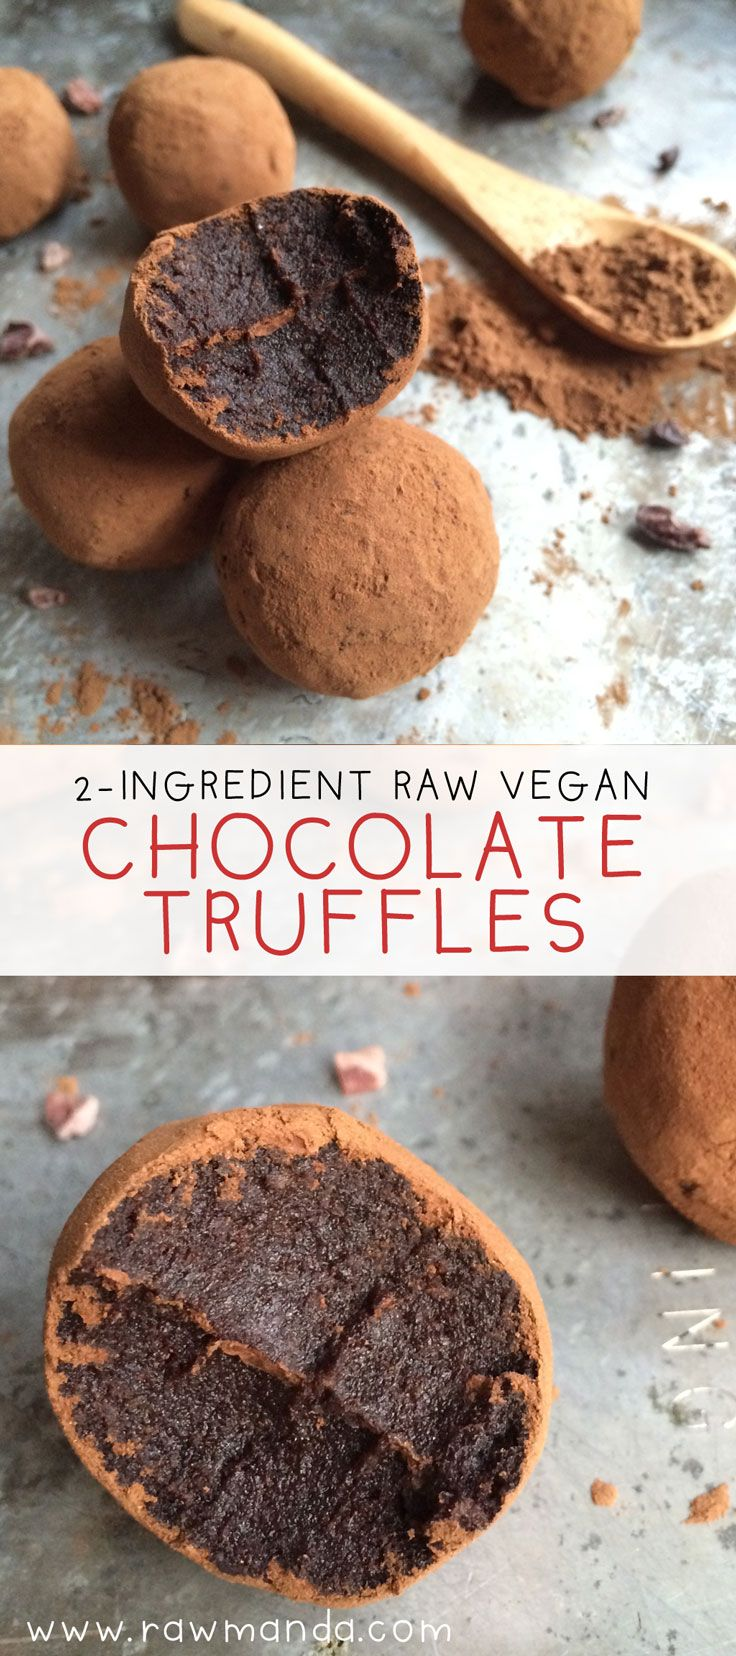 The easiest raw chocolate truffles you could possibly make! You only need two ingredients to make these rich, smooth raw chocolate truffles.